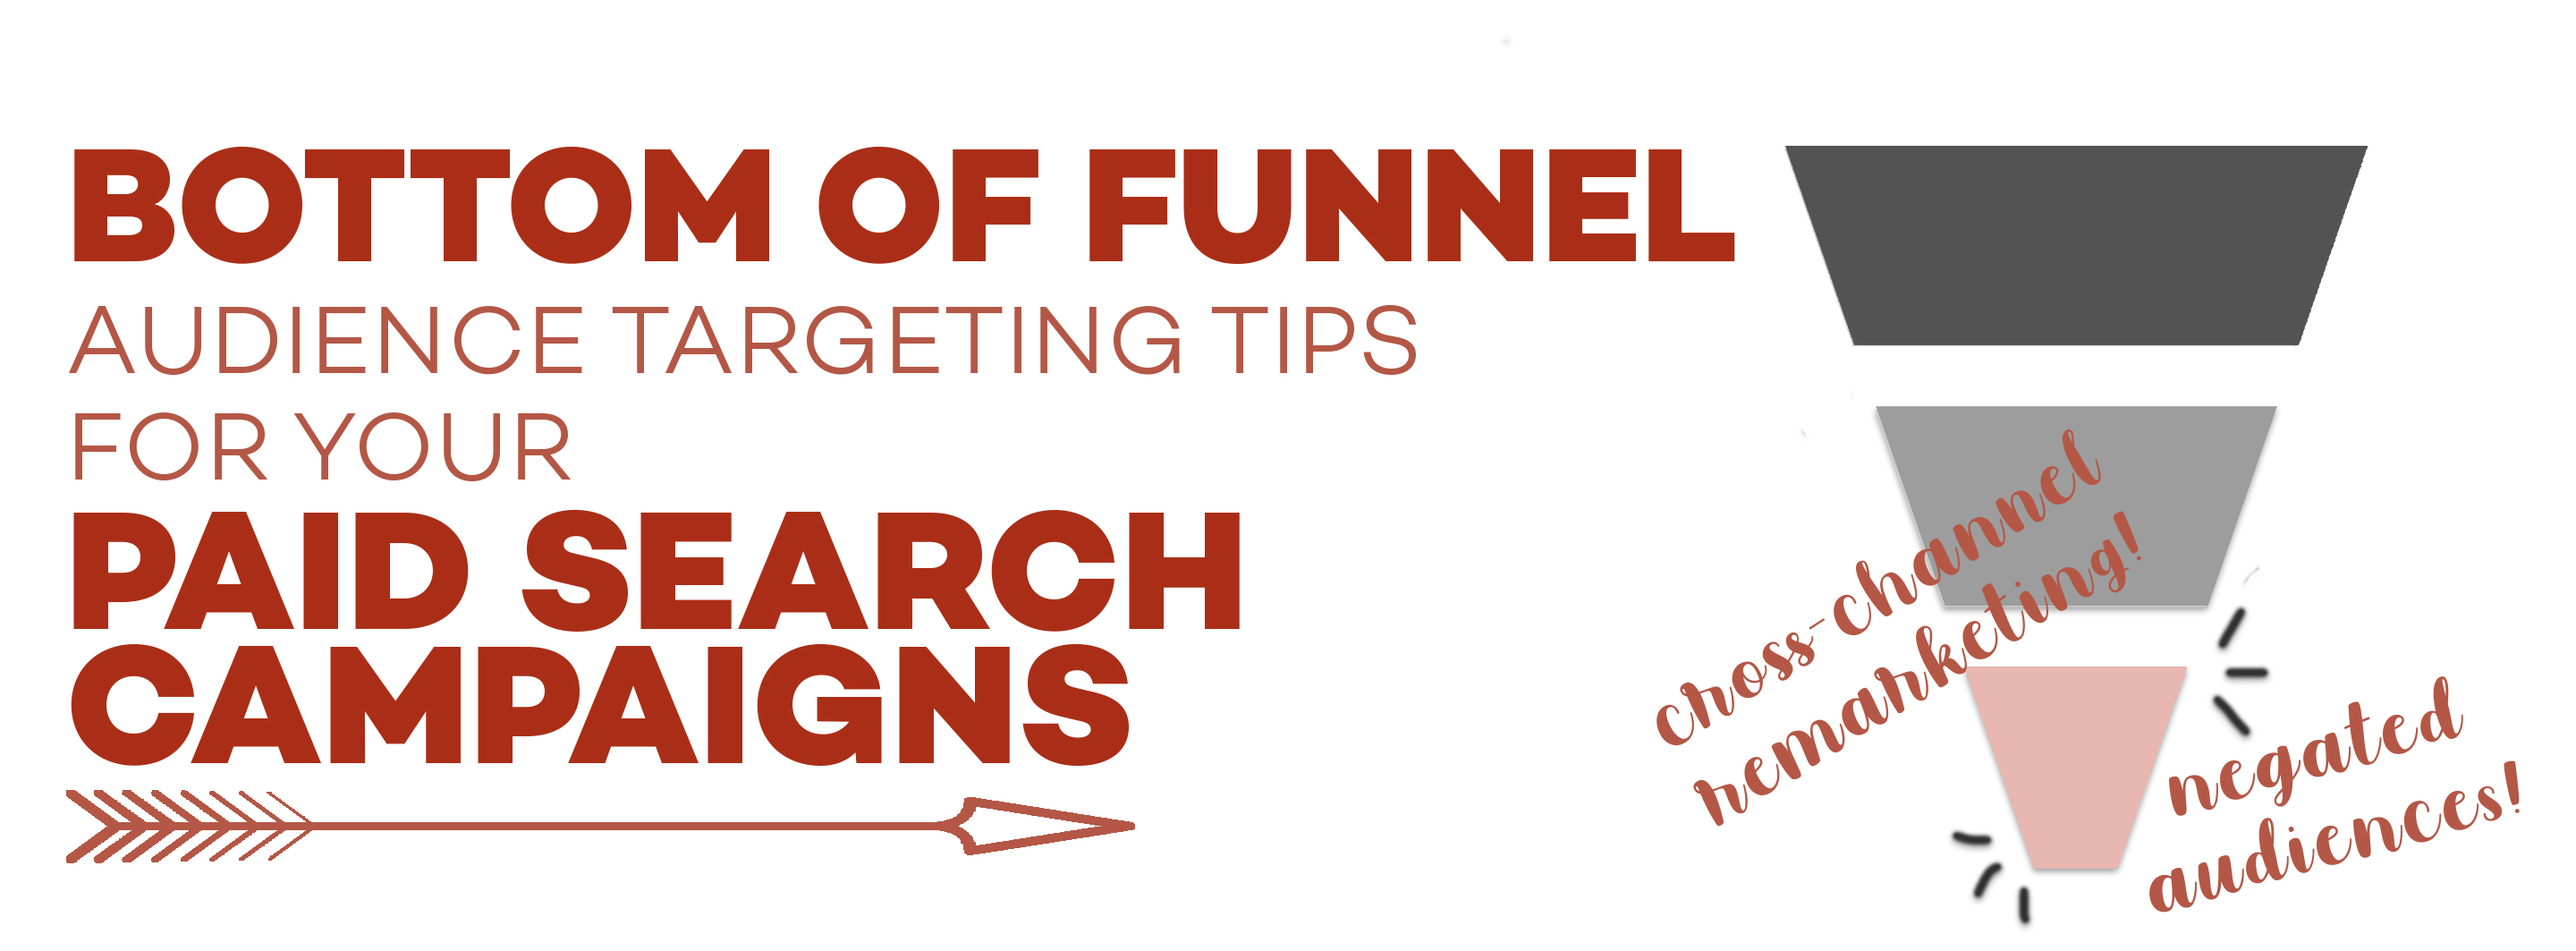 Bottom of funnel paid search tips